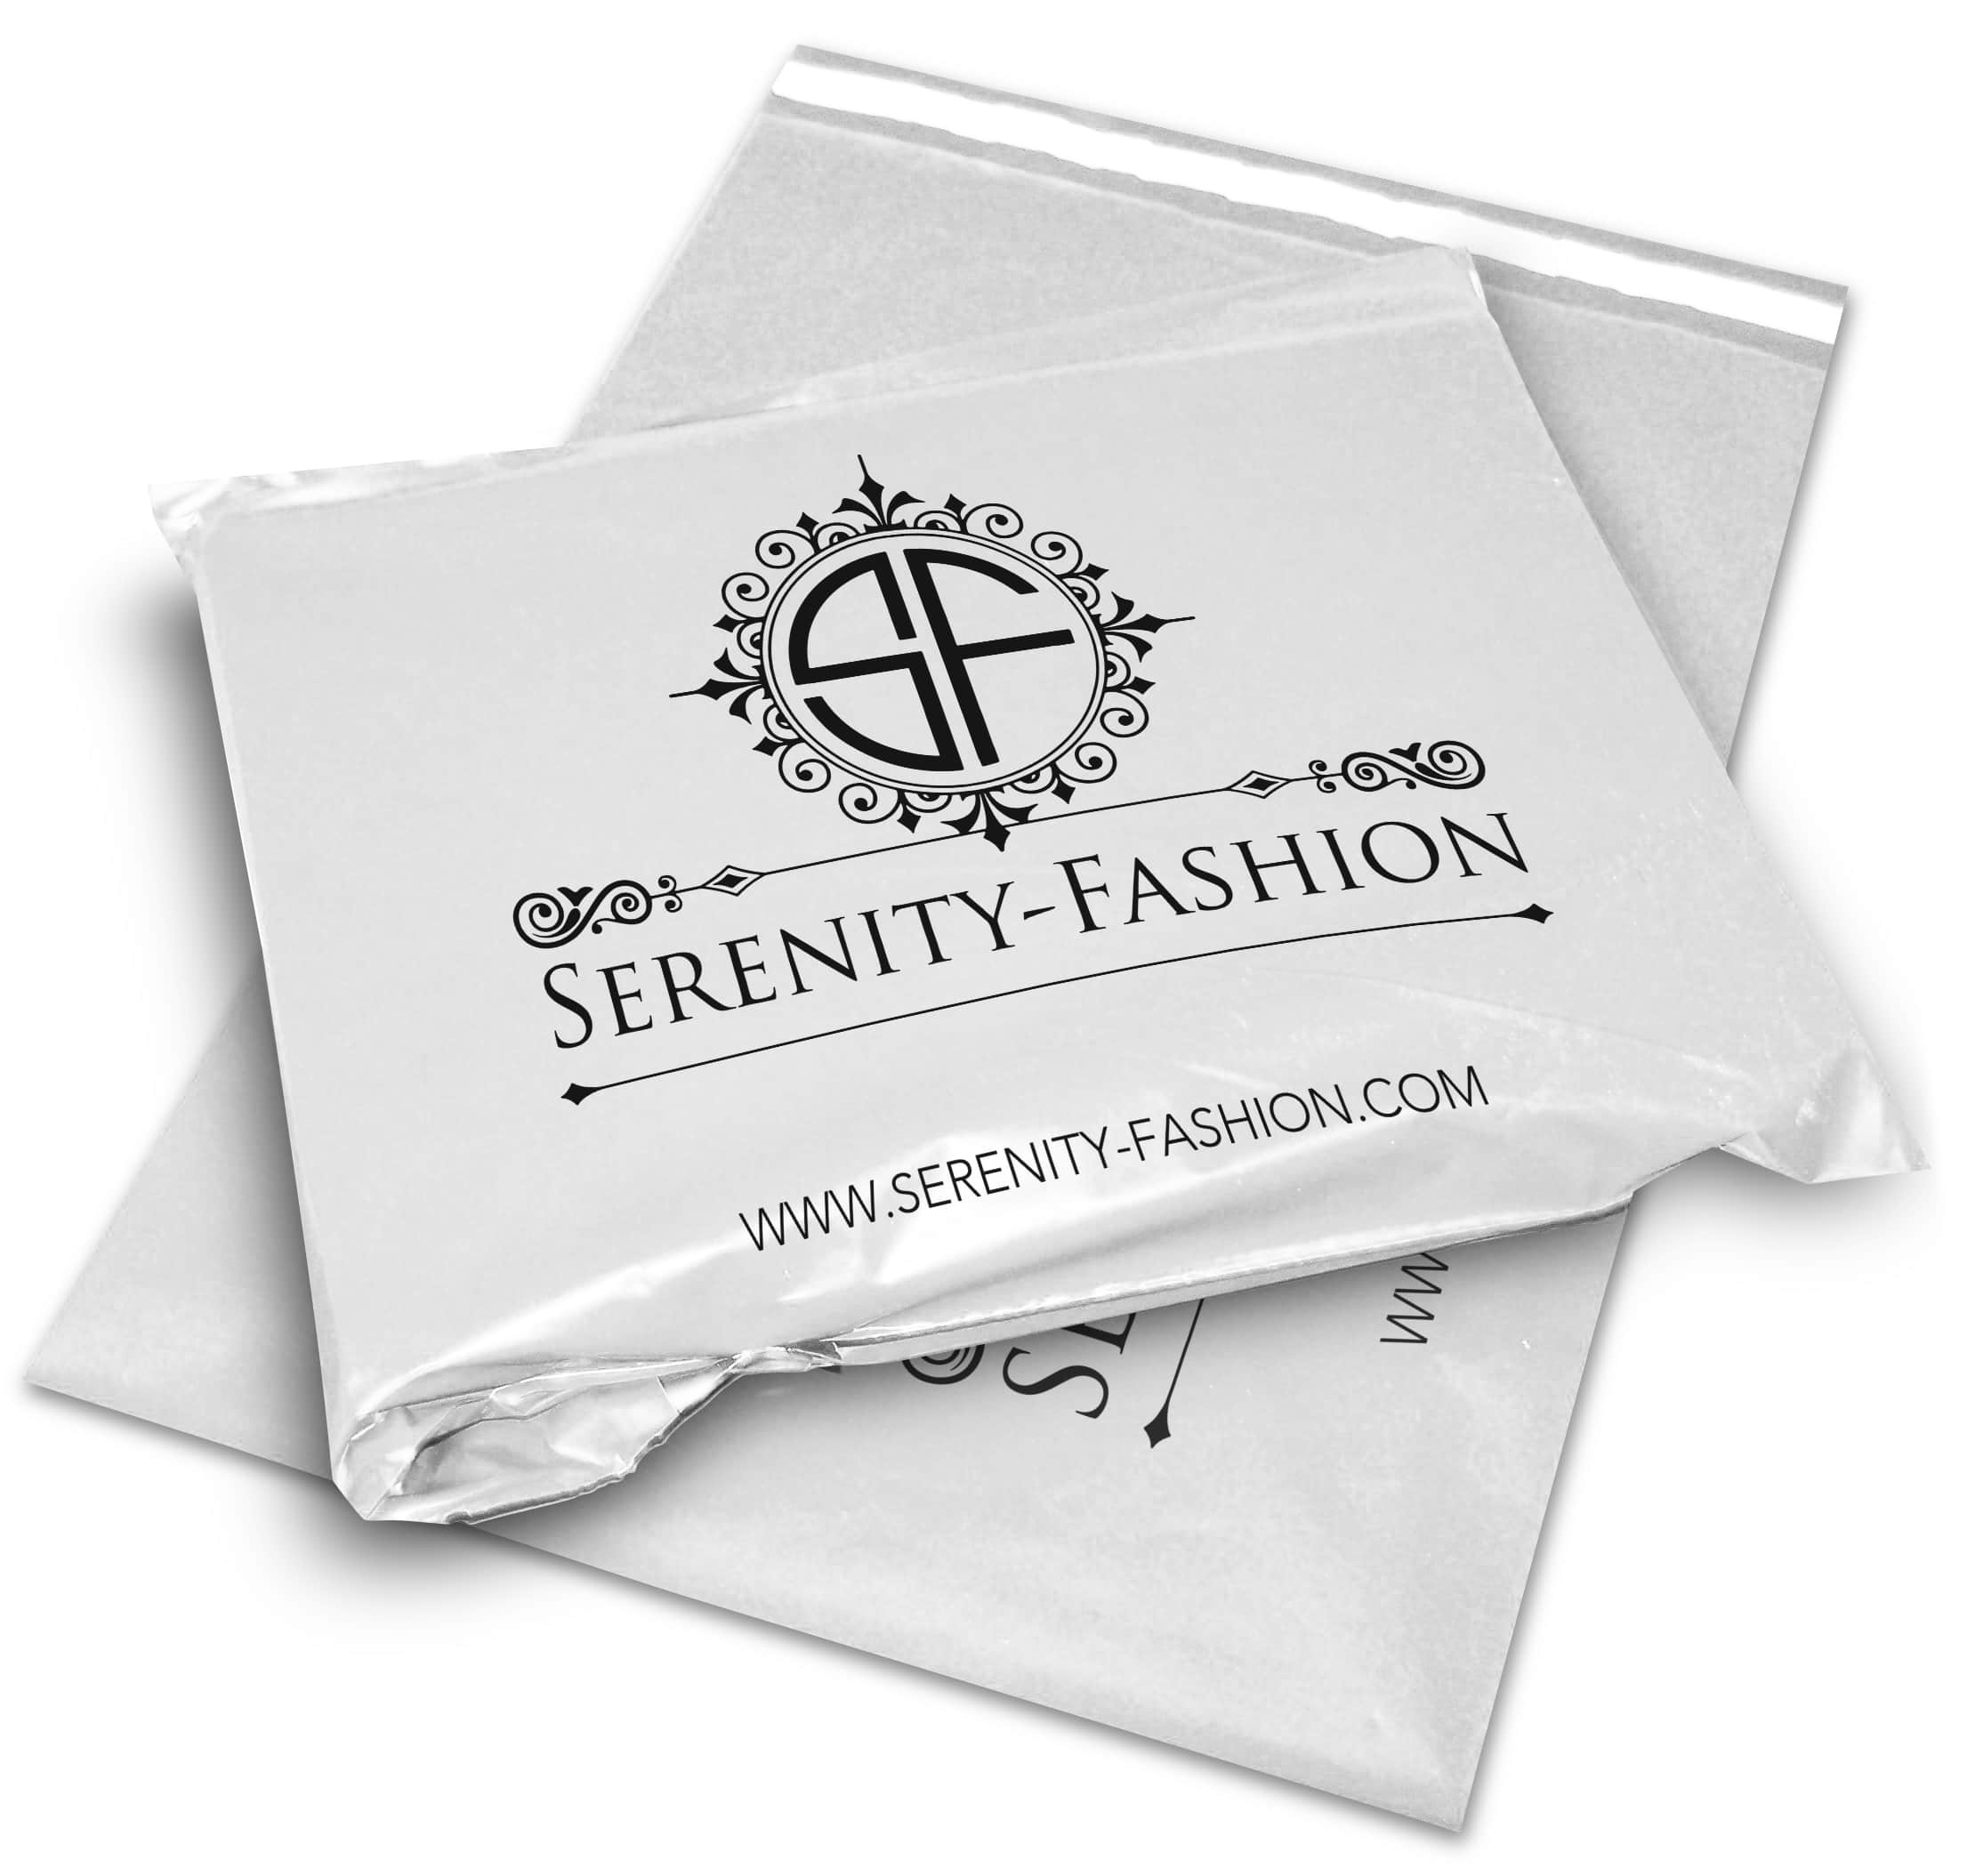 serenity fashion printed mailing bags